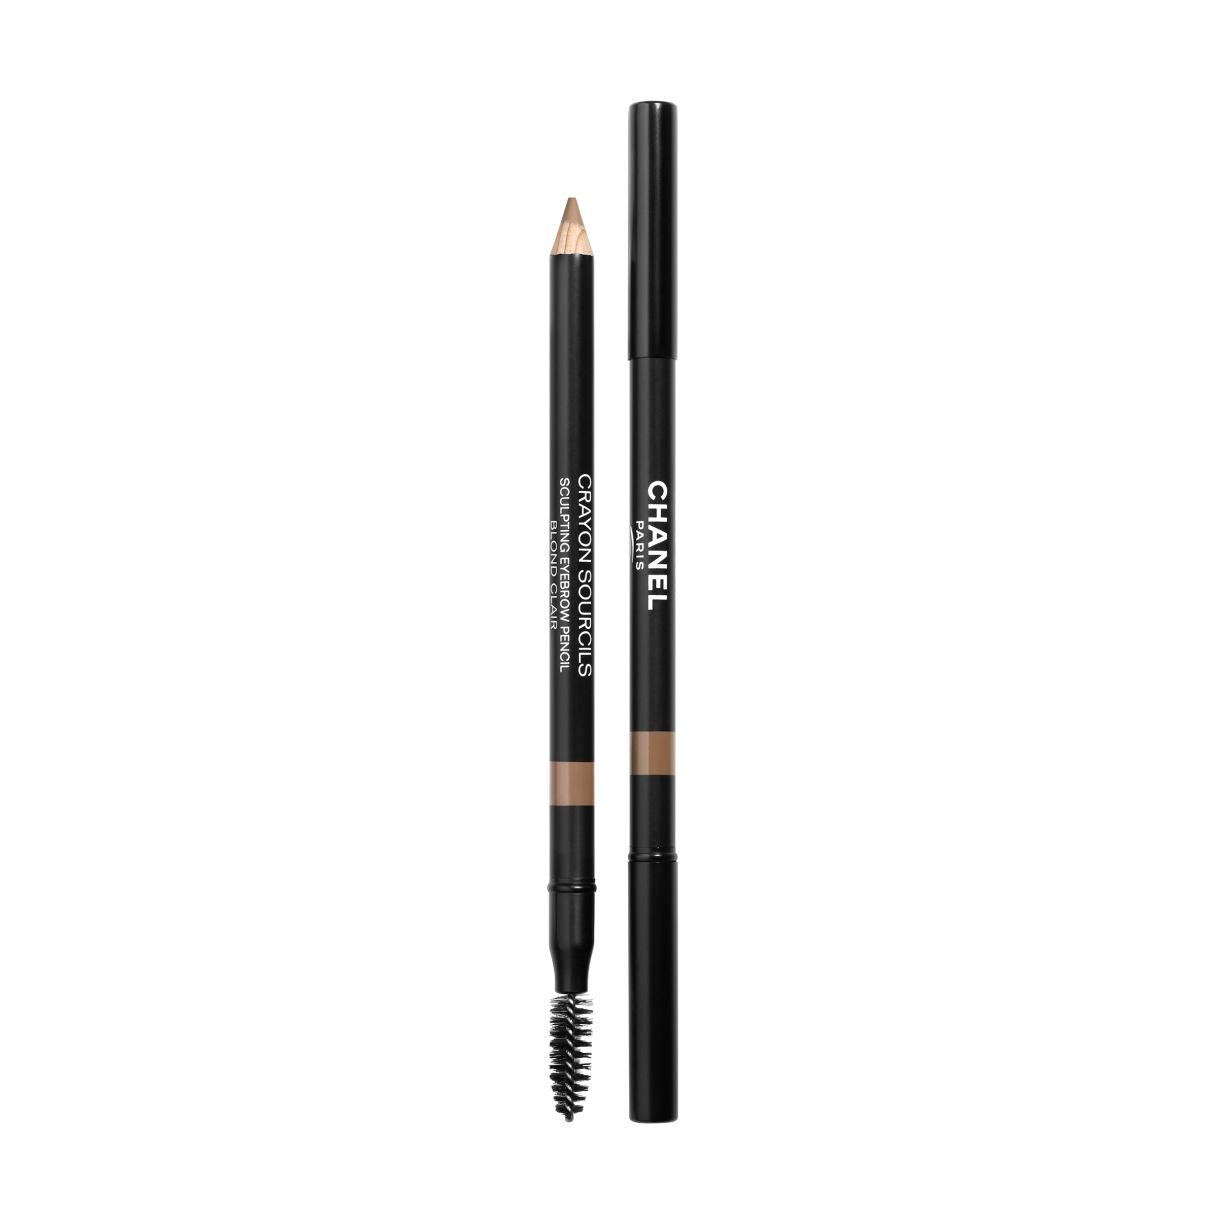 CRAYON SOURCILS SCULPTING EYEBROW PENCIL 10 - BLOND CLAIR